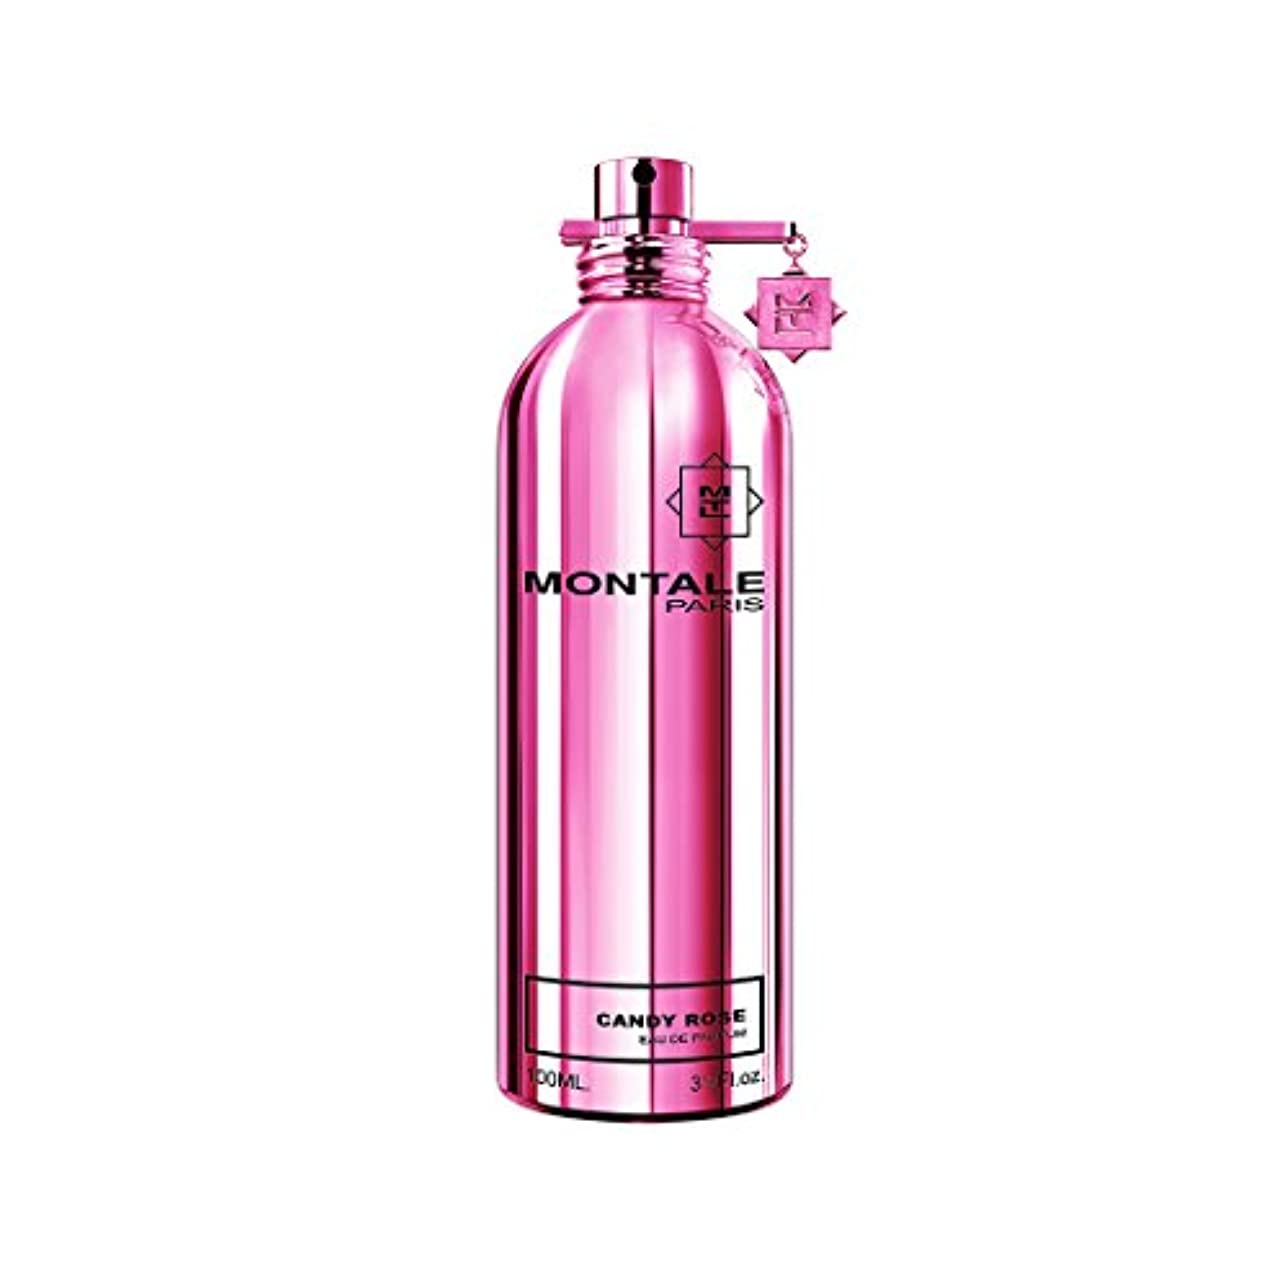 印象的な敬意を表してトランザクションMontale Candy Rose by Montale Eau De Parfum Spray 3.4 oz / 100 ml (Women)